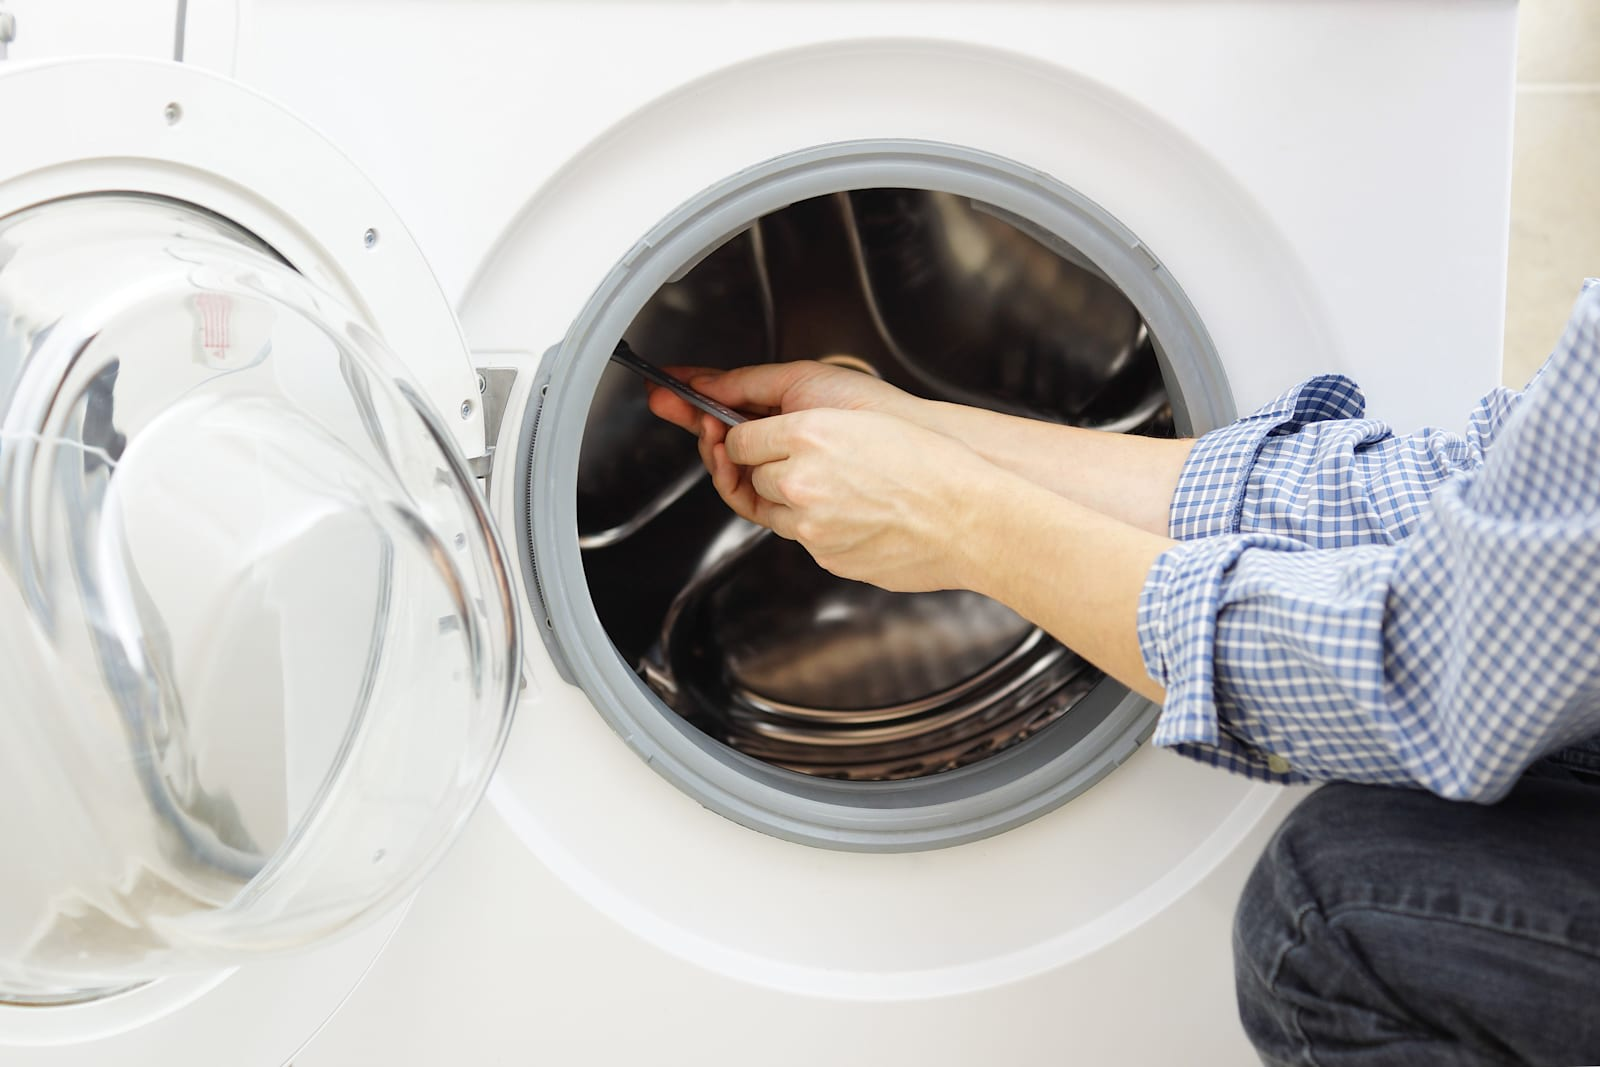 Samsung Is Using Dish Network Techs To Fix Washing Machines